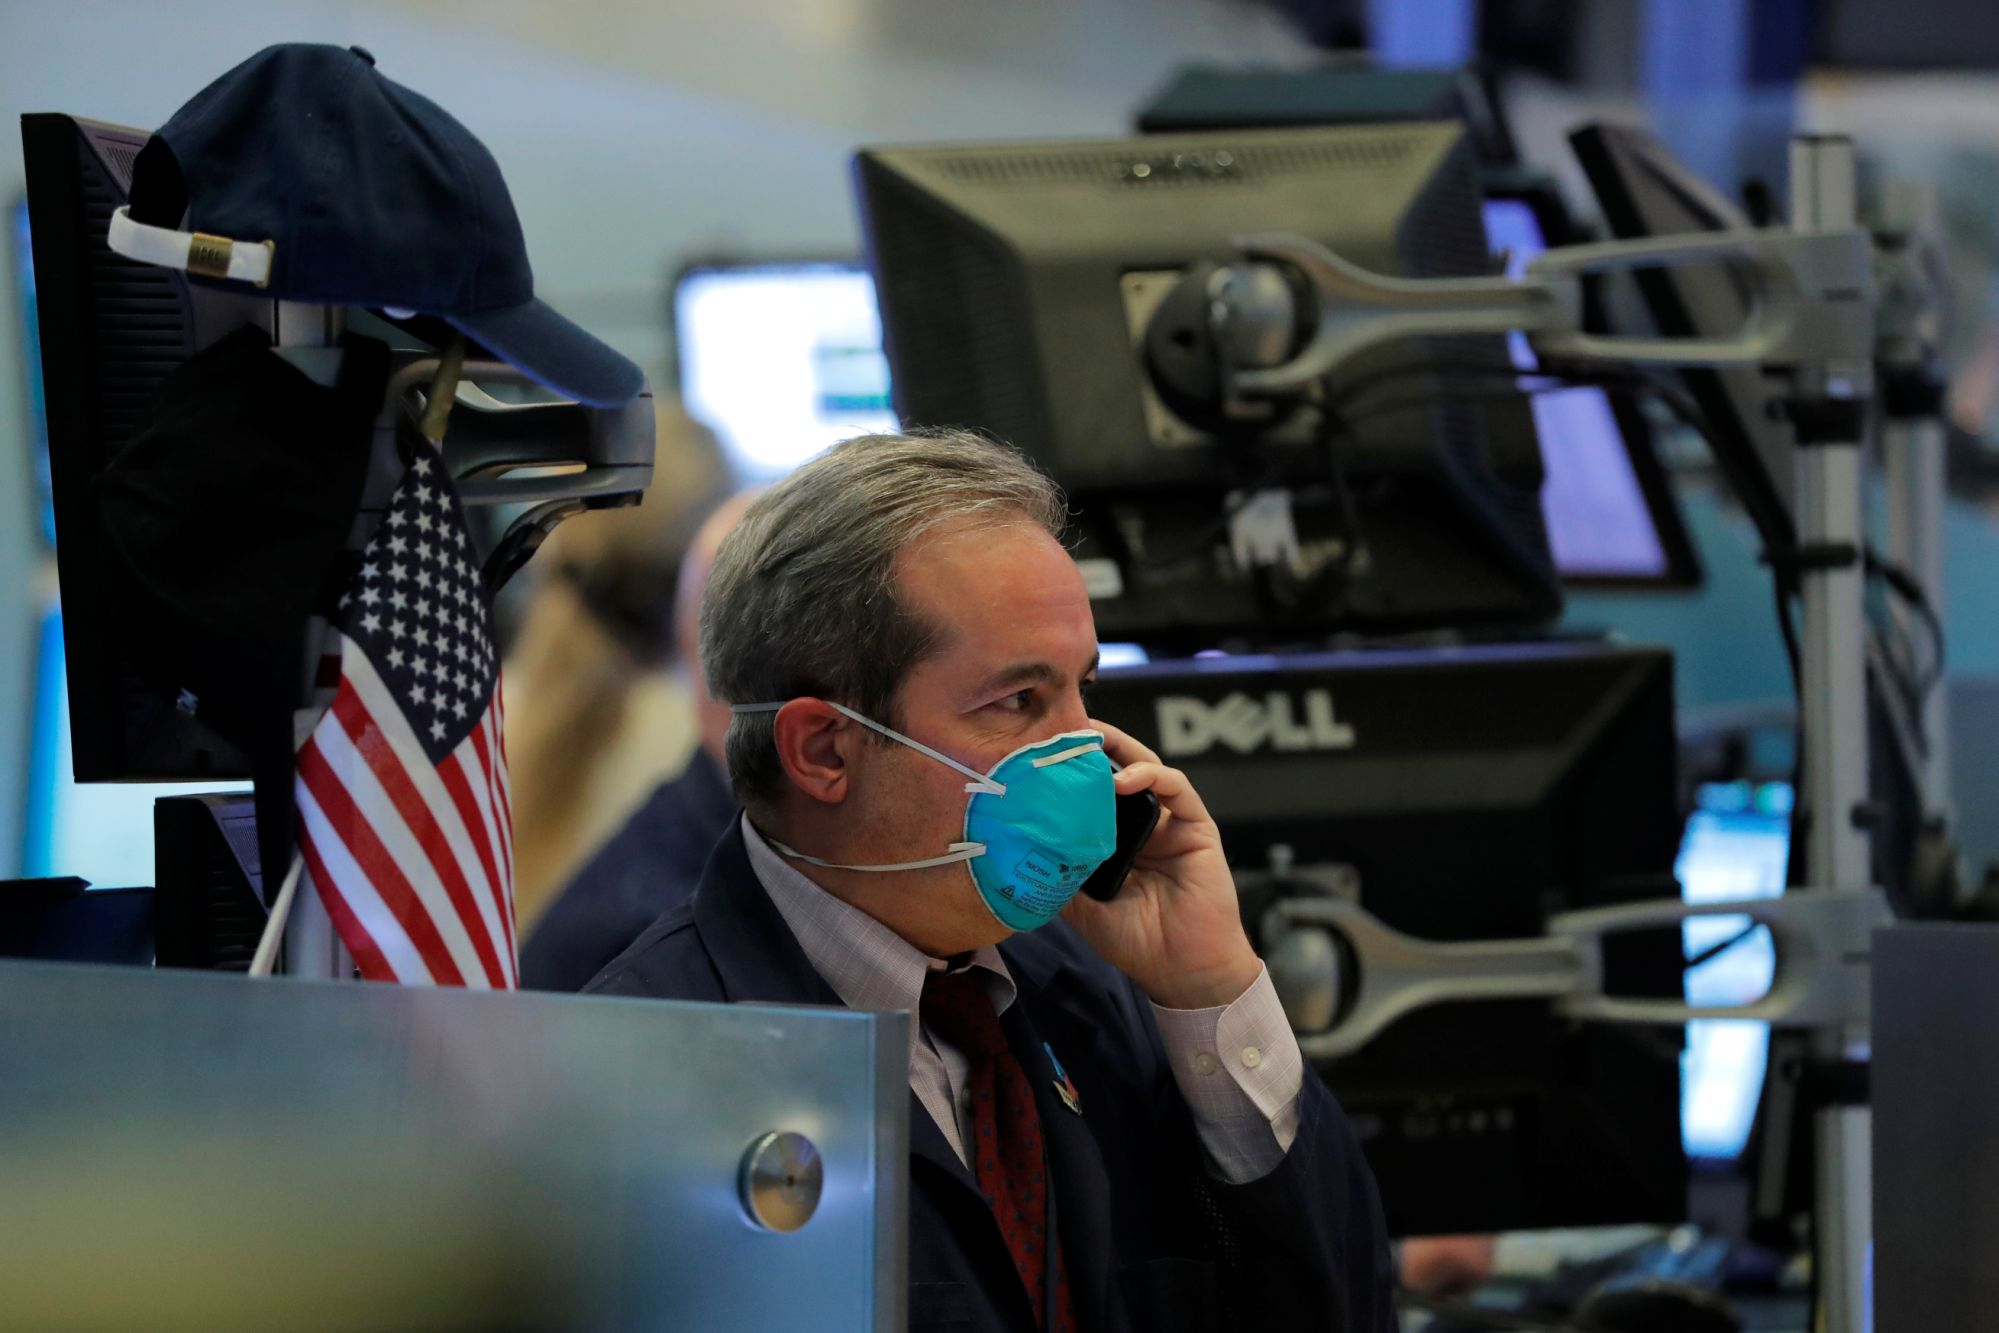 stock-market-news-live-updates:-stock-futures-trade-lower,-giving-back-gains-after-tech-earnings